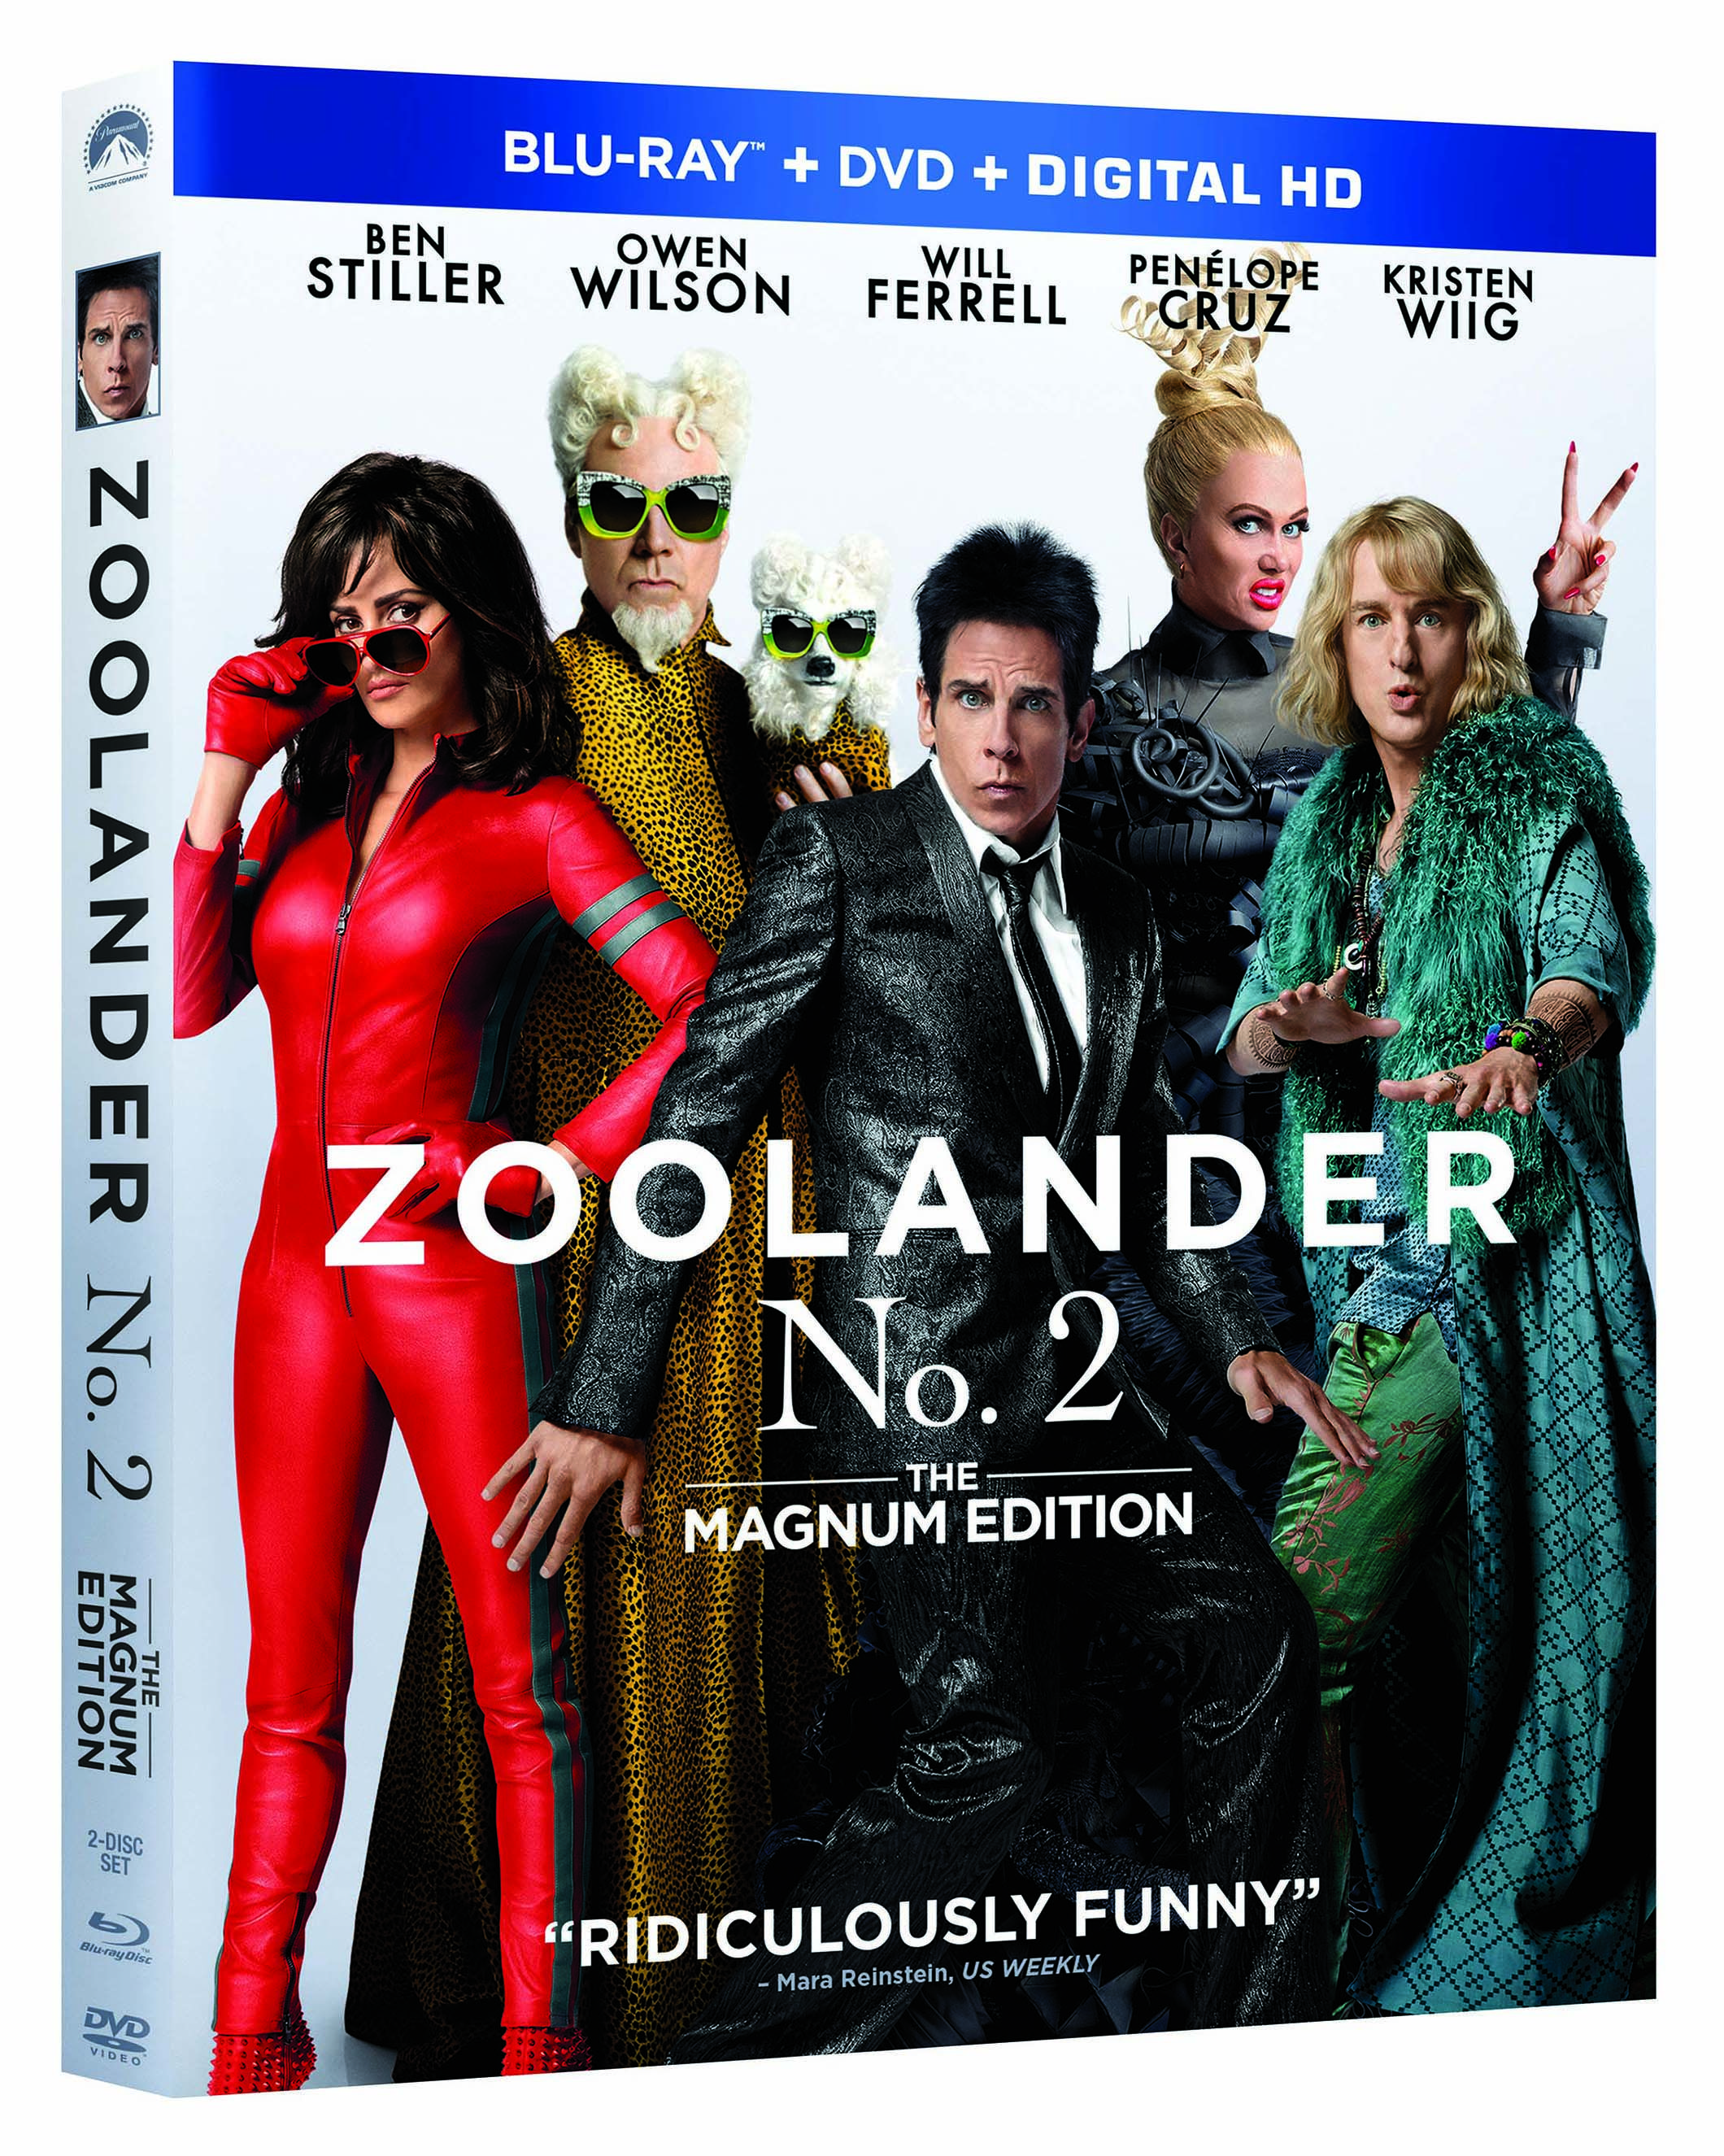 GIVEAWAY: Zoolander No. 2 on Blu-ray/DVD combo - http://thisbirdsday.com/giveaway-zoolander-no-2/ #CanWin